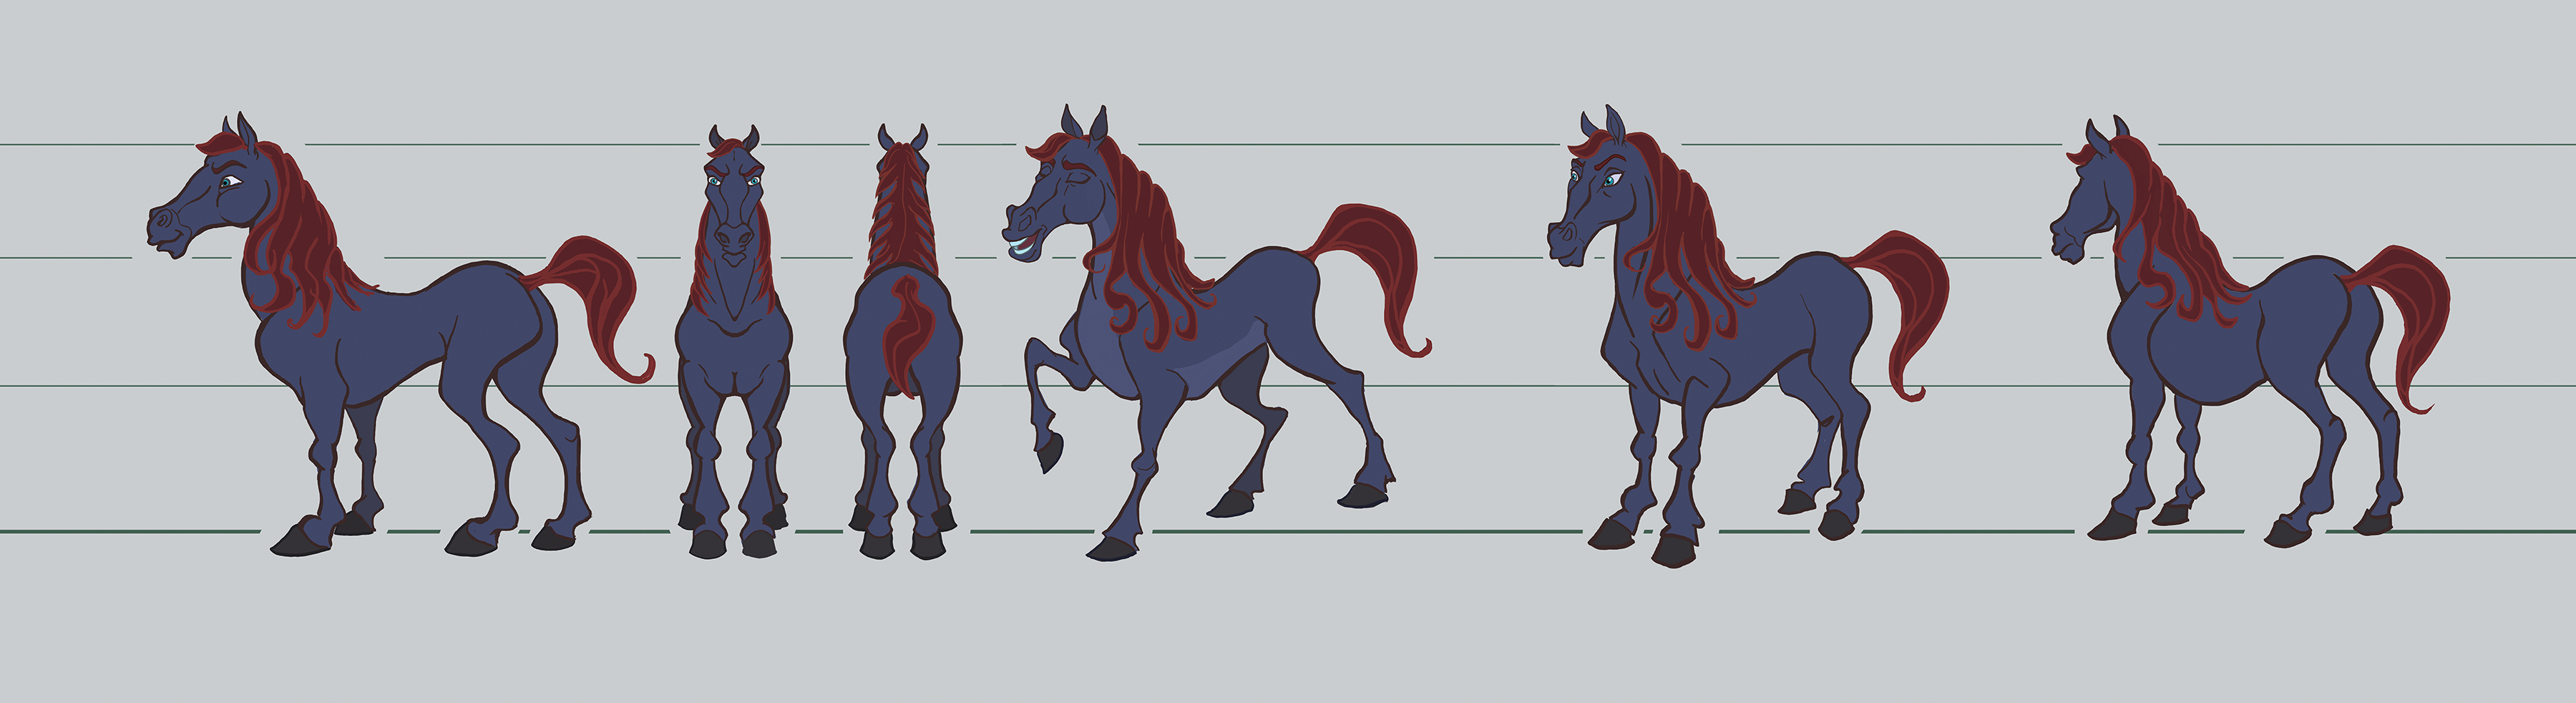 horse character web 2